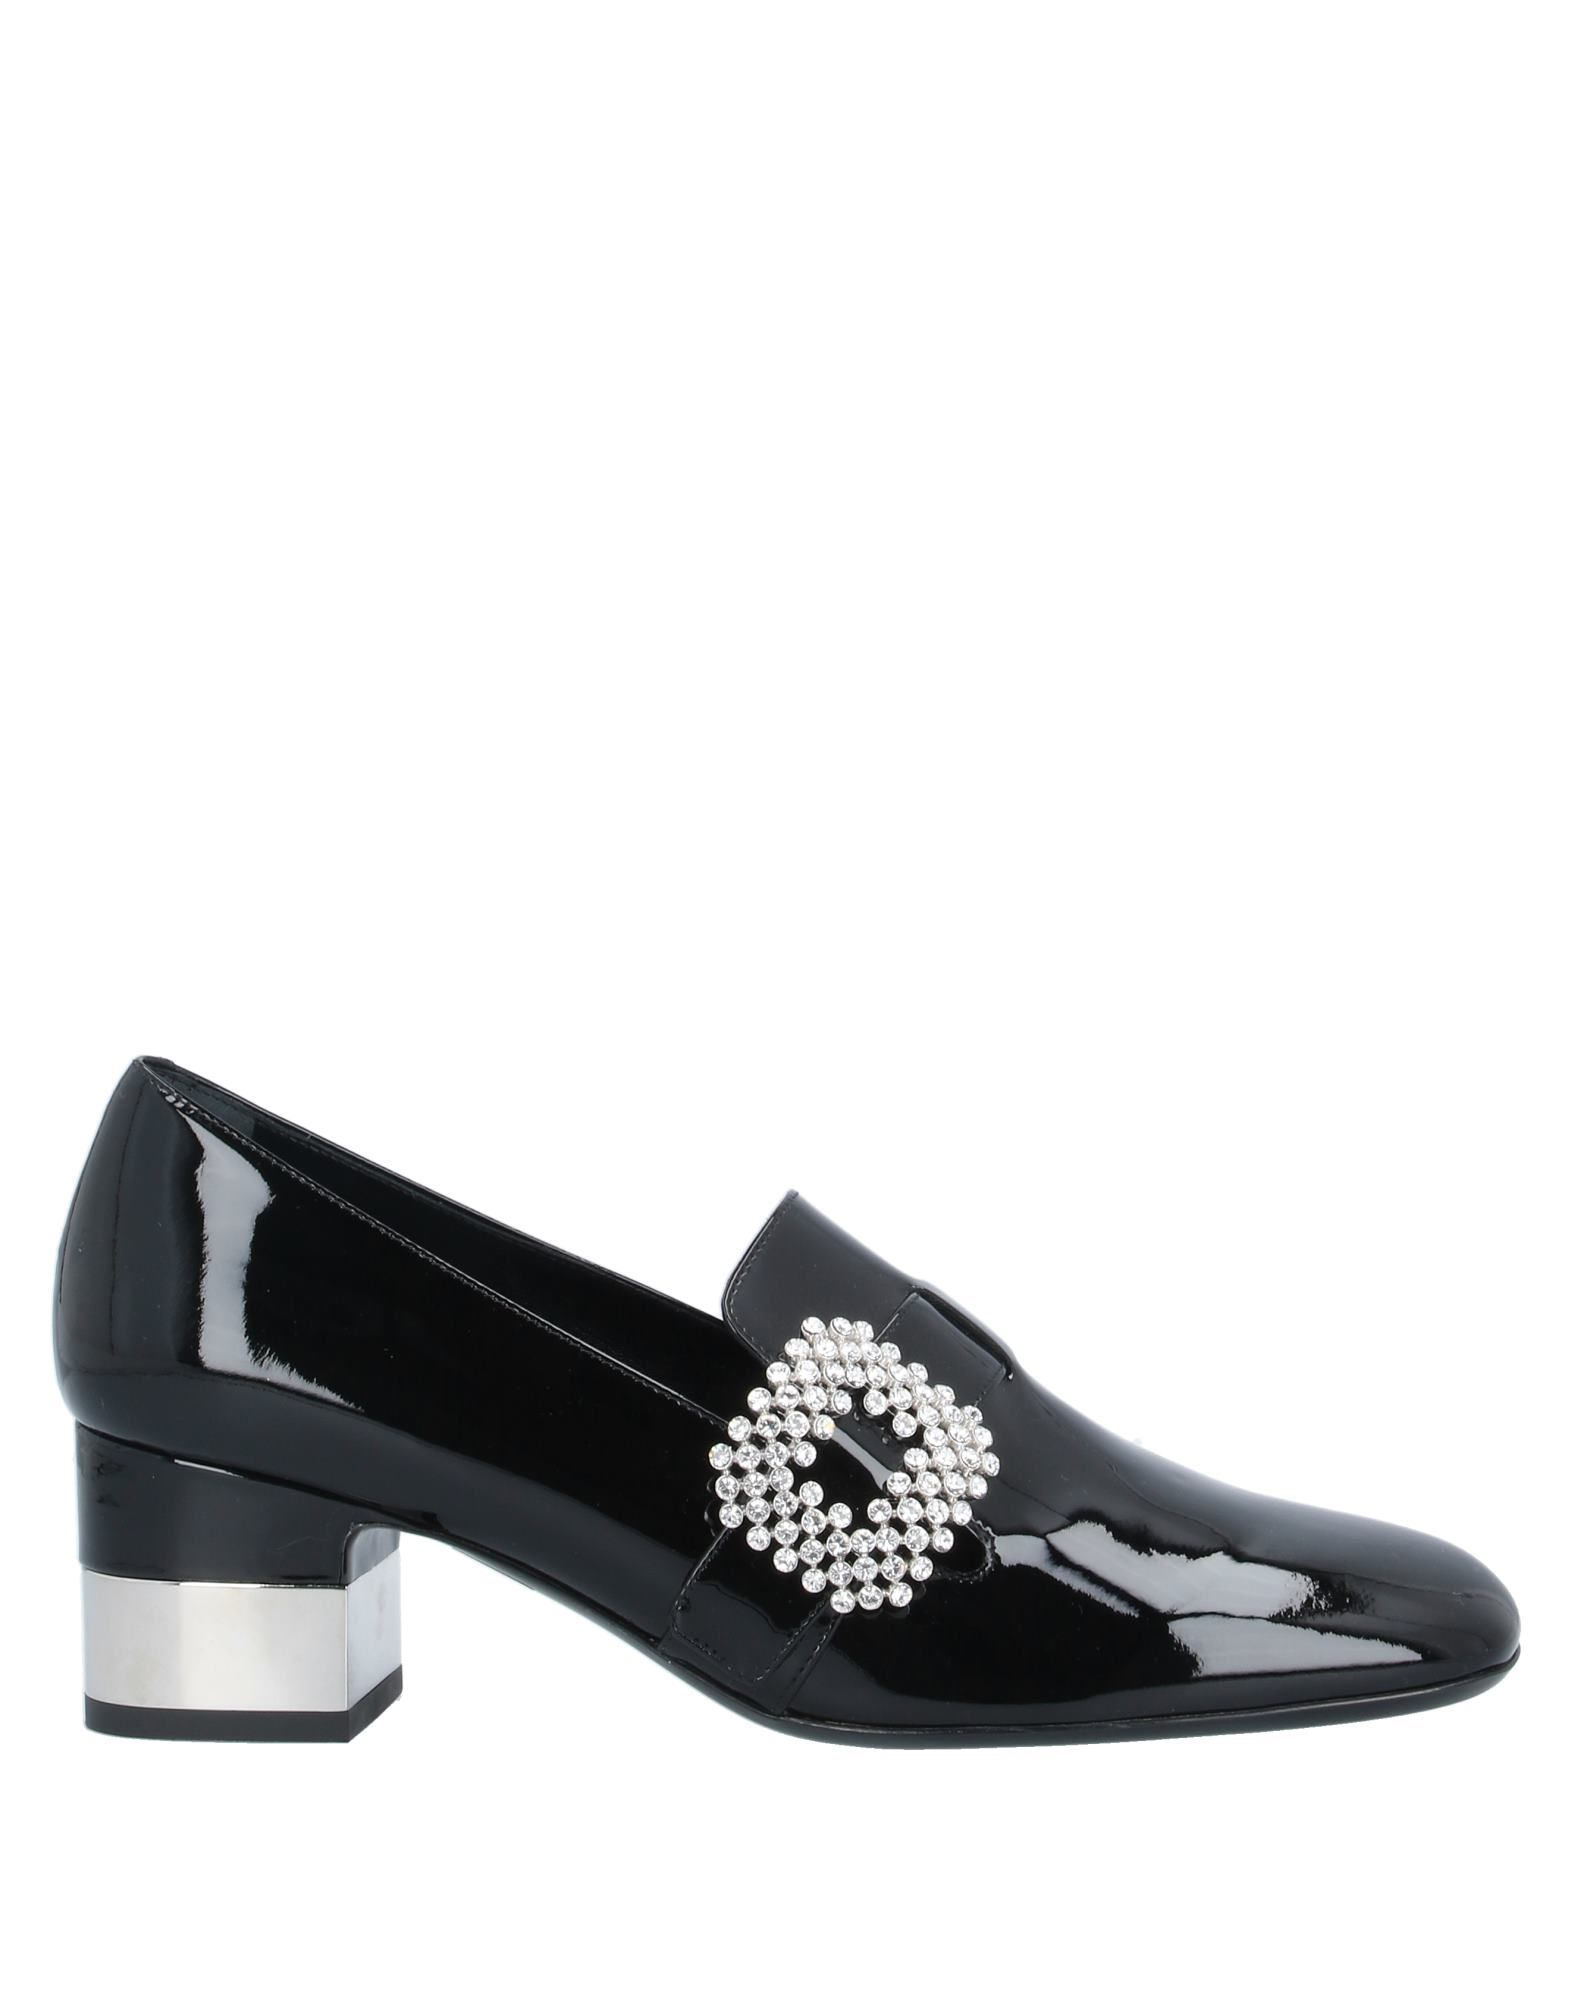 ROGER VIVIER Loafers. varnished effect, rhinestones, solid color, square toeline, square heel, leather lining, leather sole, contains non-textile parts of animal origin. Calfskin